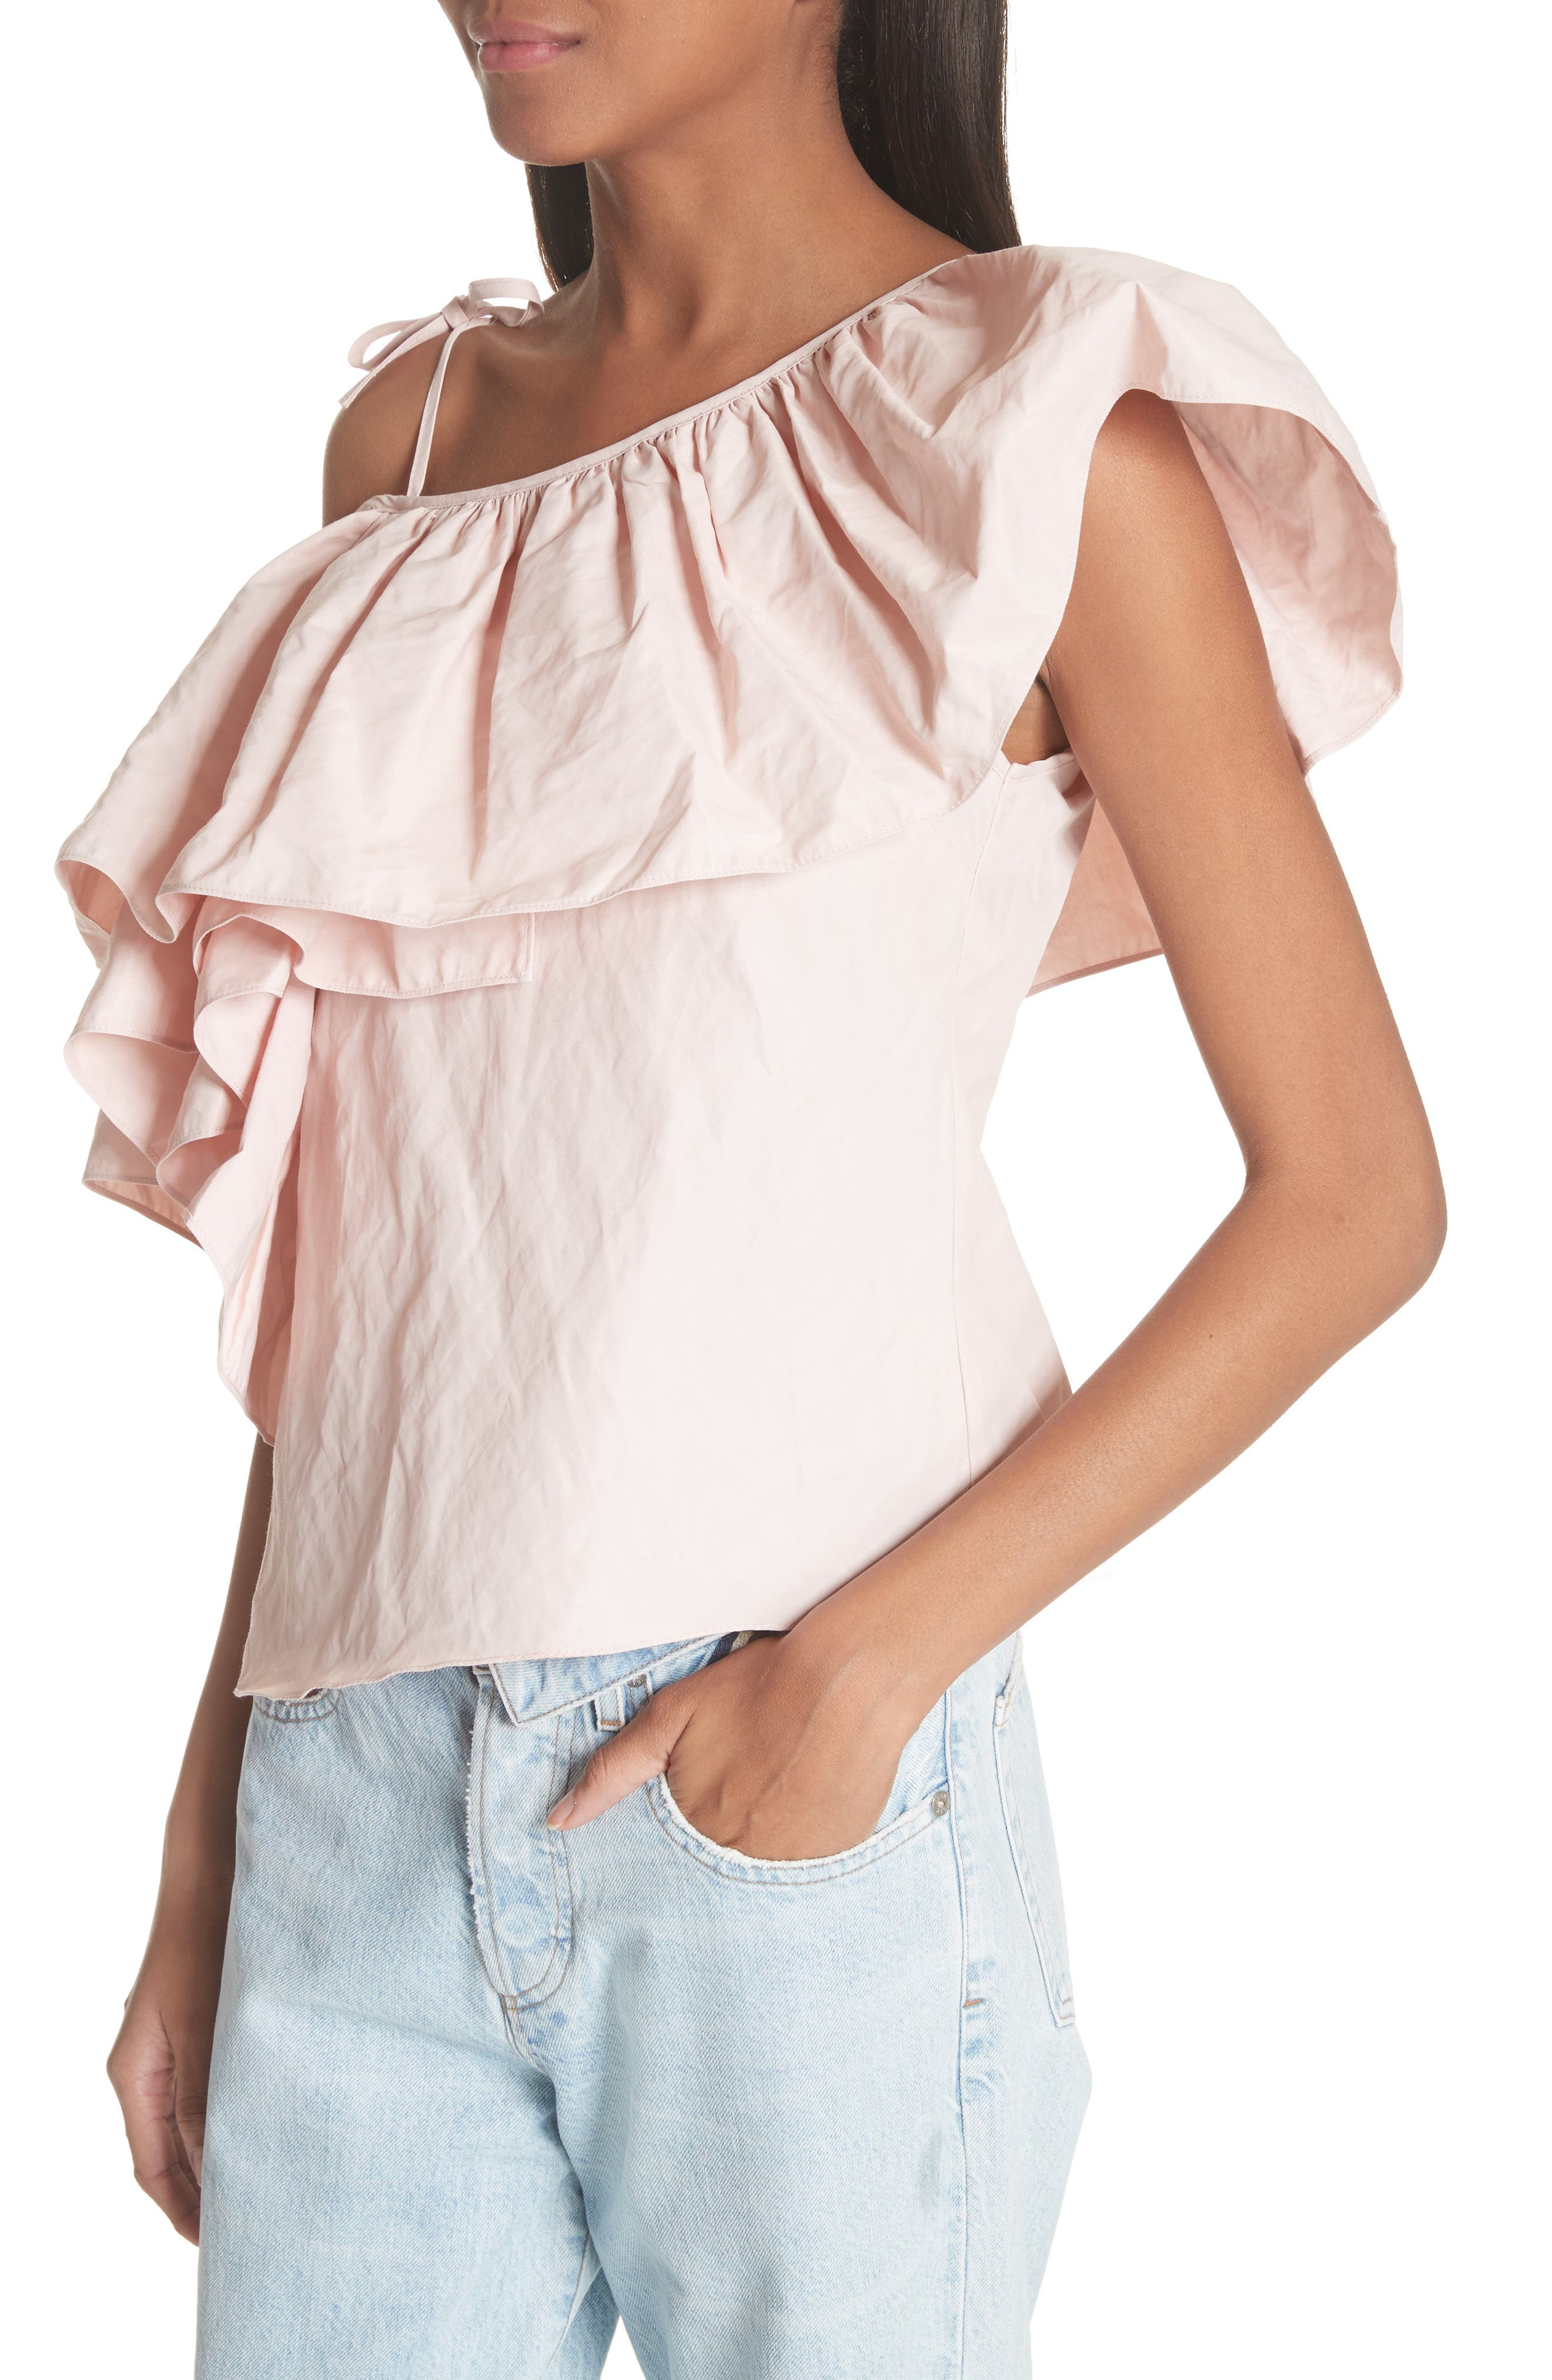 Marques'Almeida One Shoulder Ruffle Top,                             Alternate thumbnail 4, color,                             Pale Pink